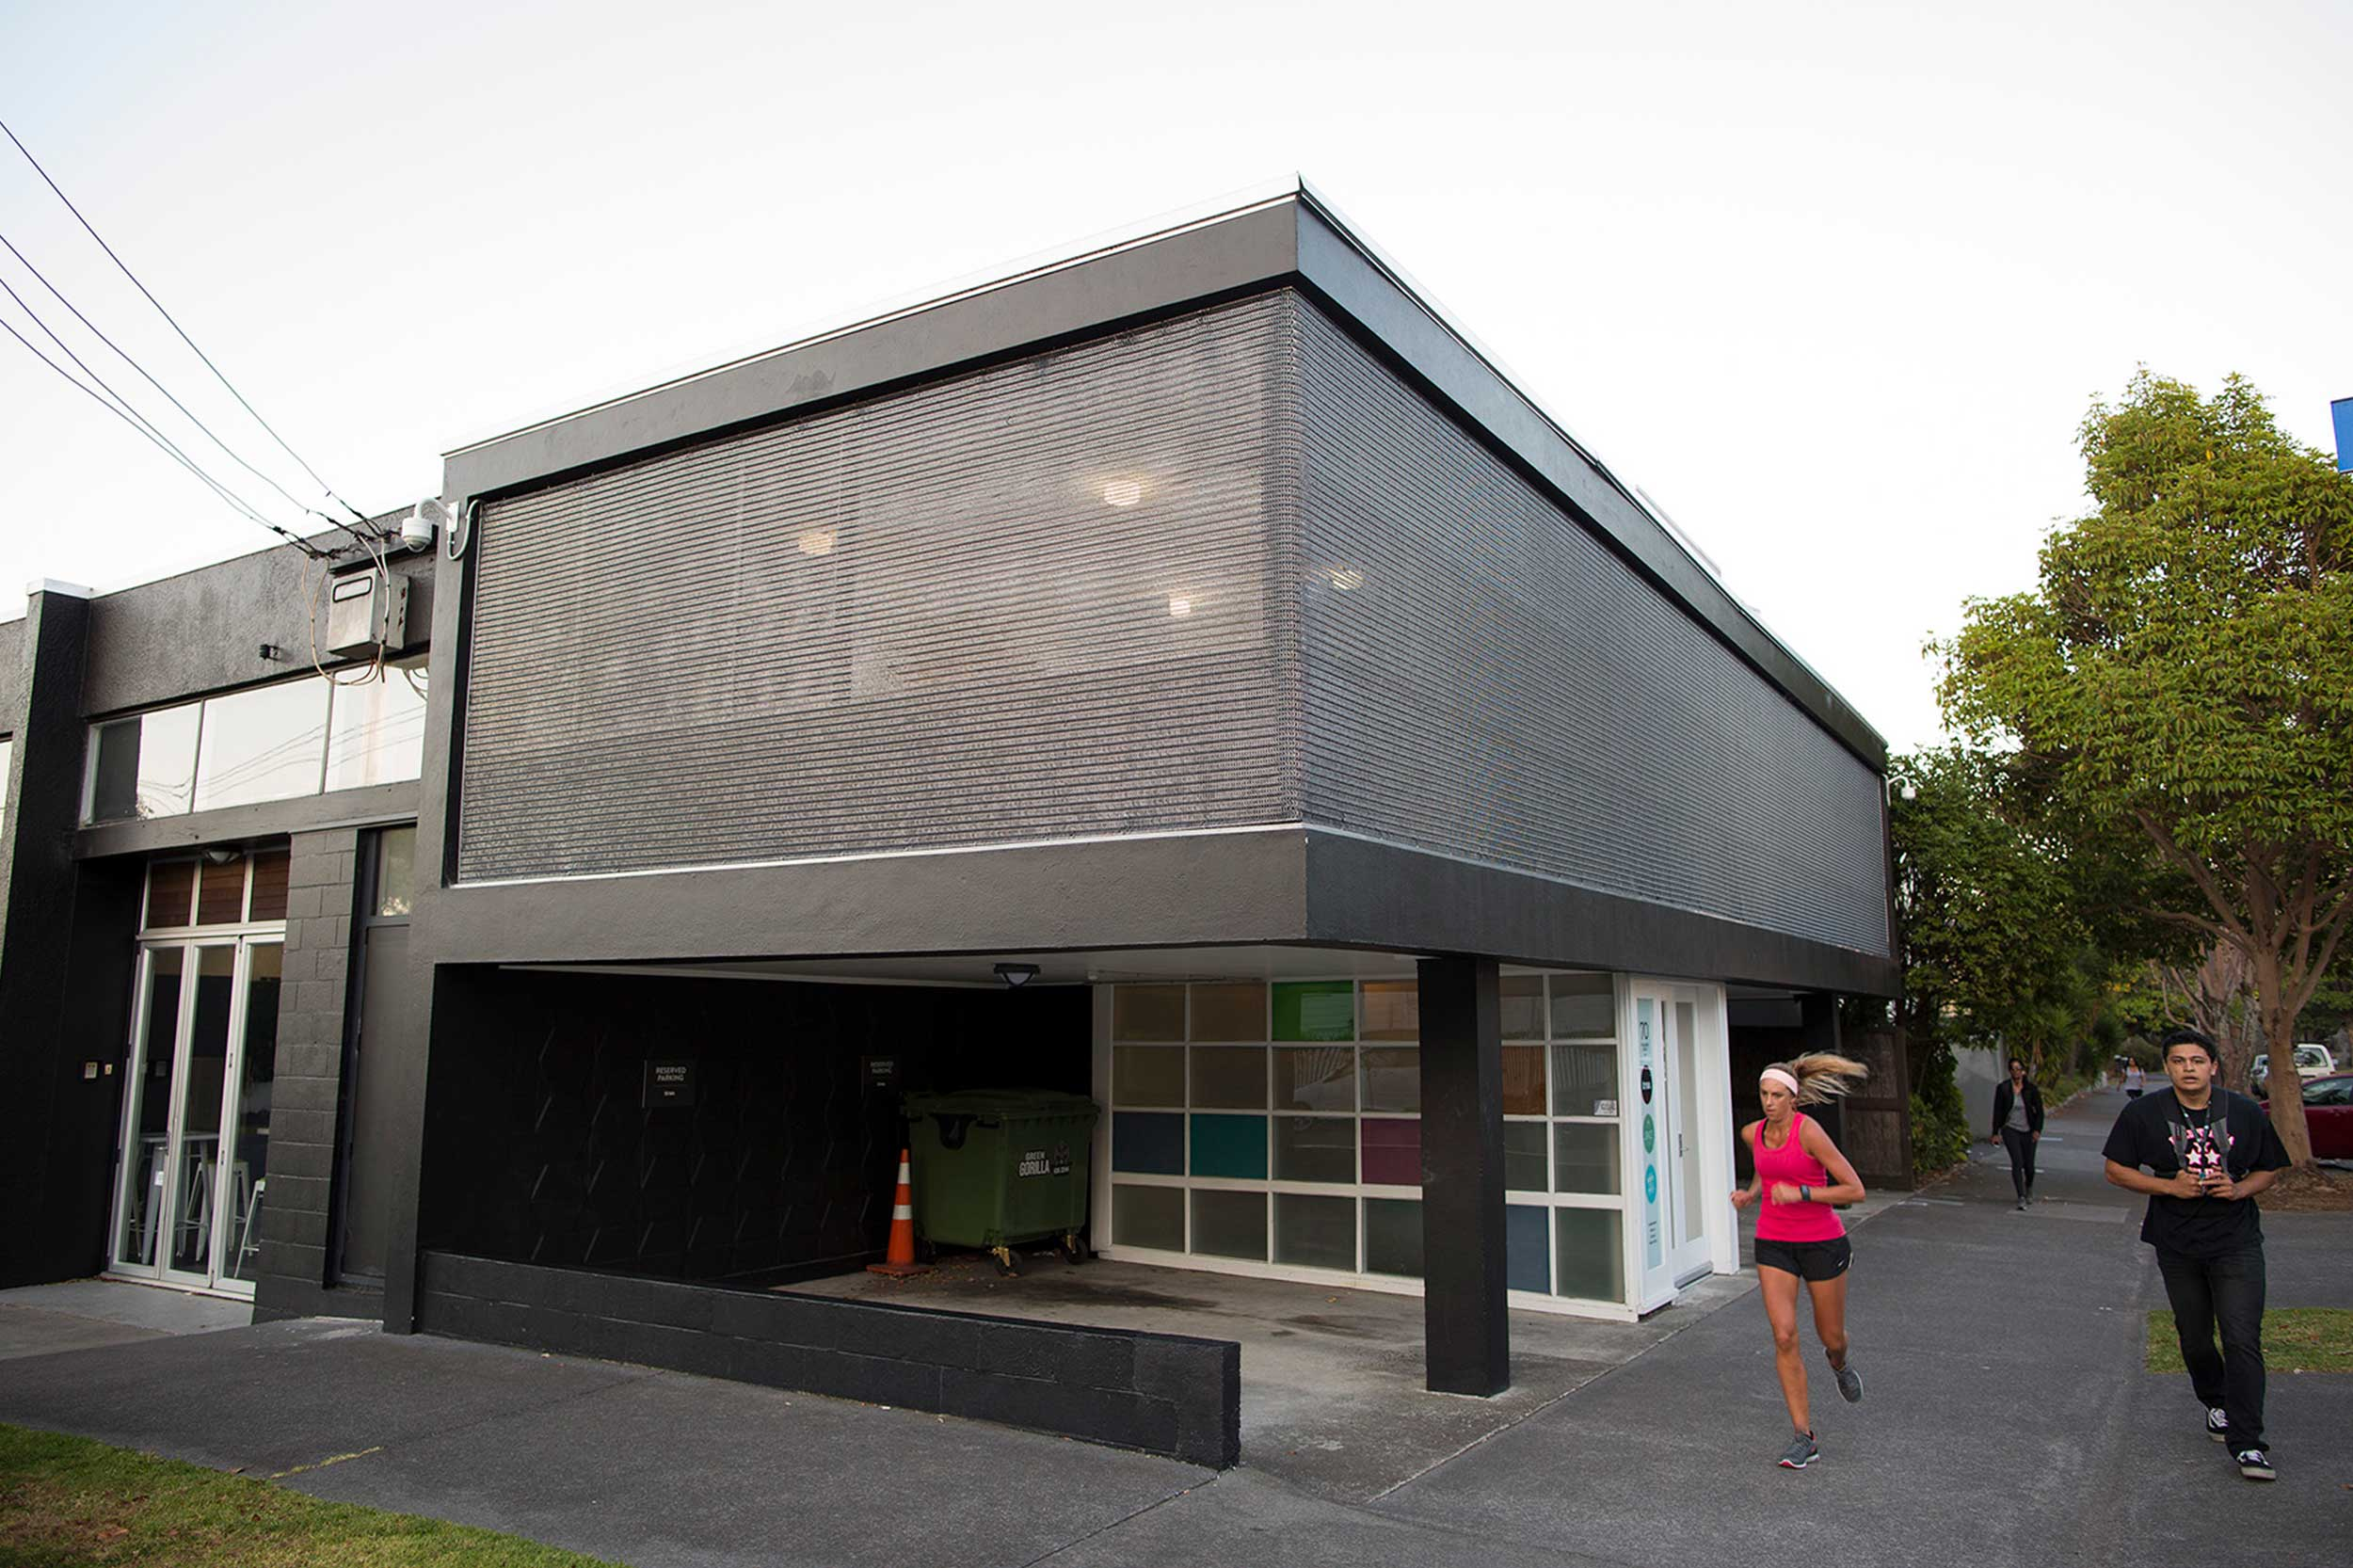 Solar Shading for Office Exterior, Auckland, New Zealand